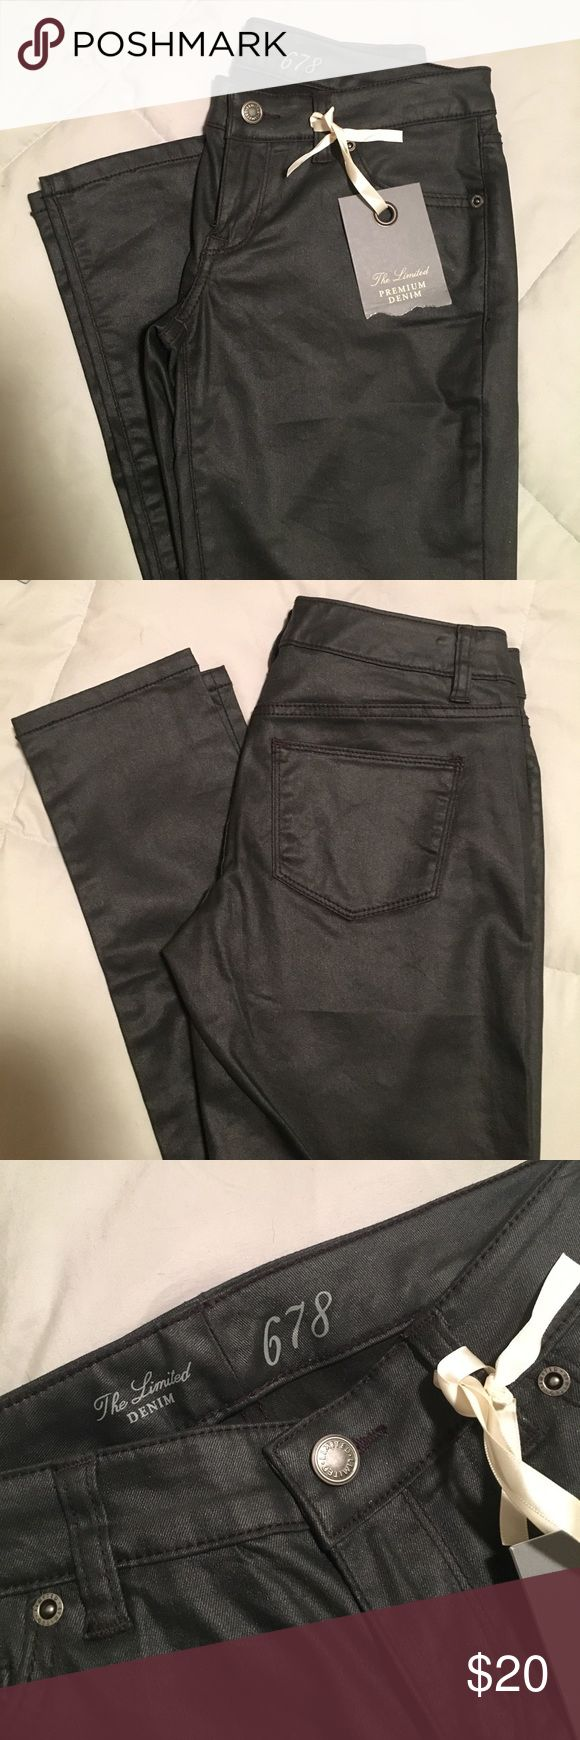 Leather Skinny Jeans Jegging style black leather jean skinny jeans. Size 0, but run a little big. New with tags. The Limited Denim Jeans Skinny